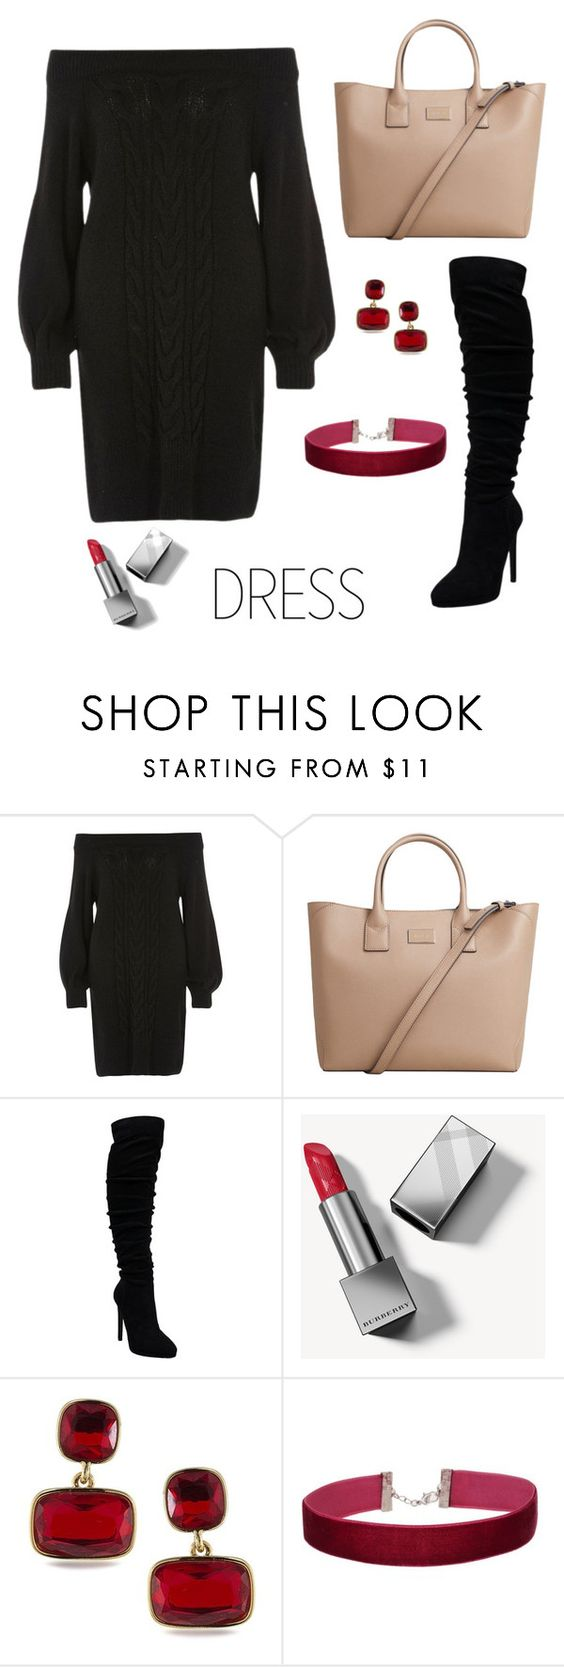 """""""Untitled #441"""" by style75 ❤ liked on Polyvore featuring River Island, MANGO, Burberry, Lauren Ralph Lauren and Miss Selfridge"""